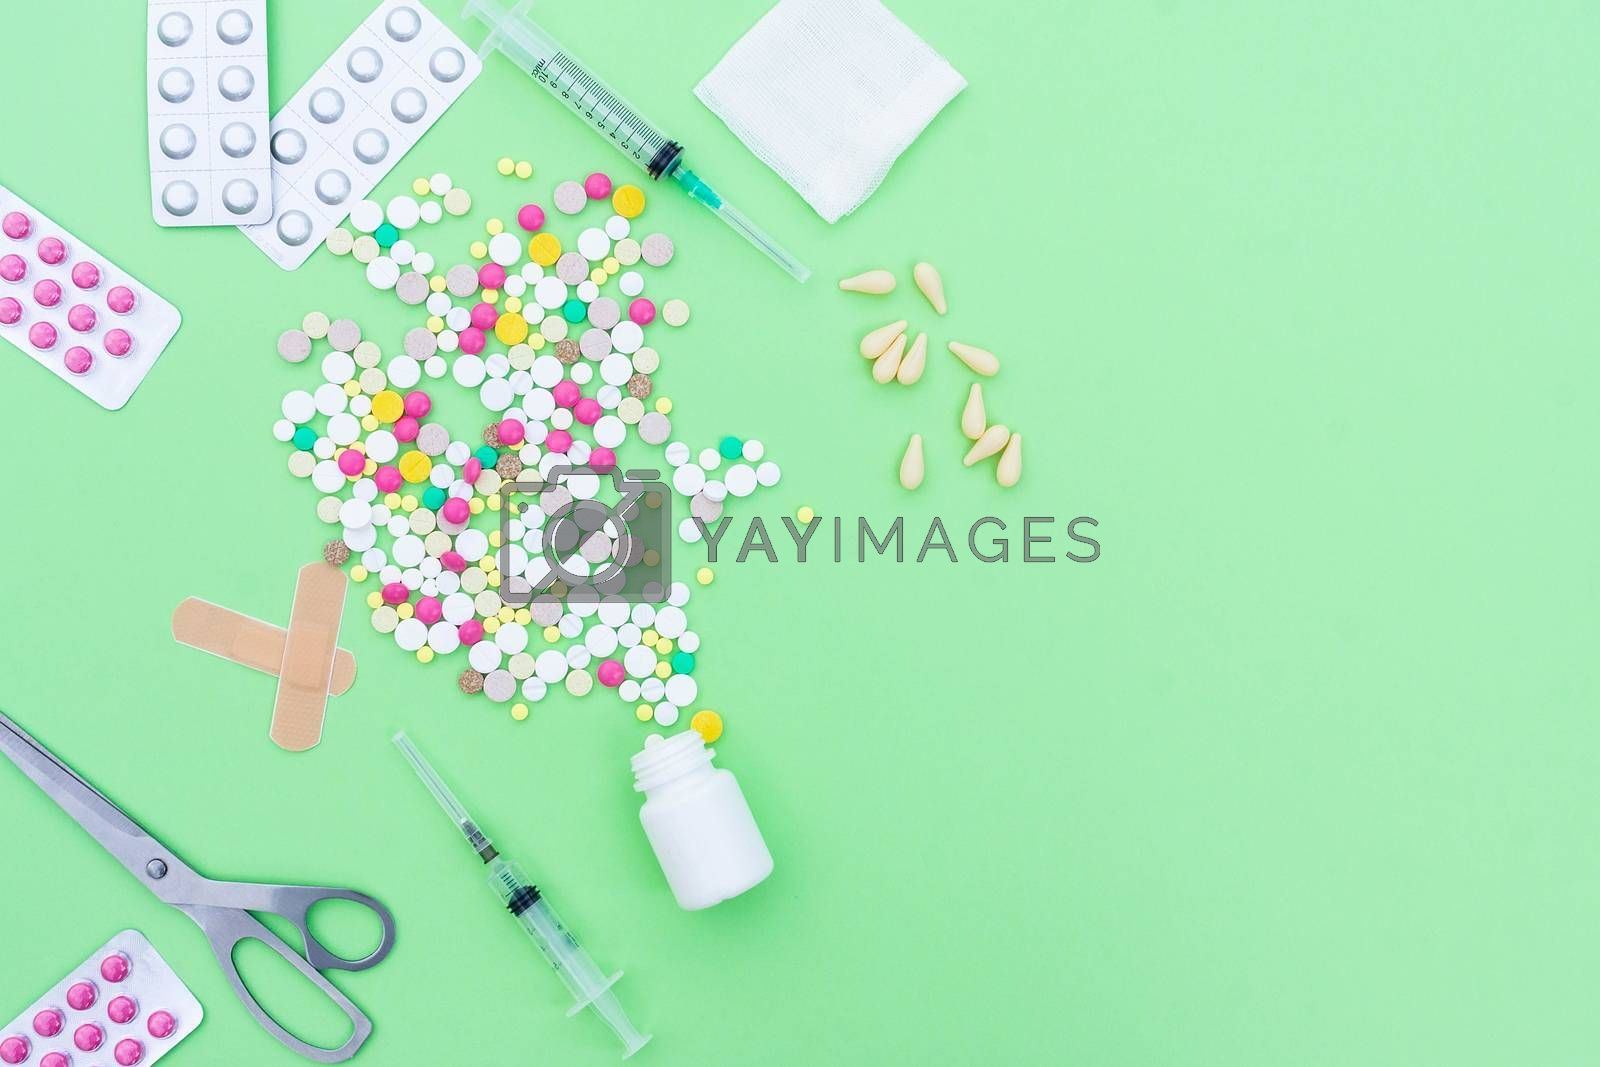 Assorted pharmaceutical medicine pills, tablets and capsules over green background